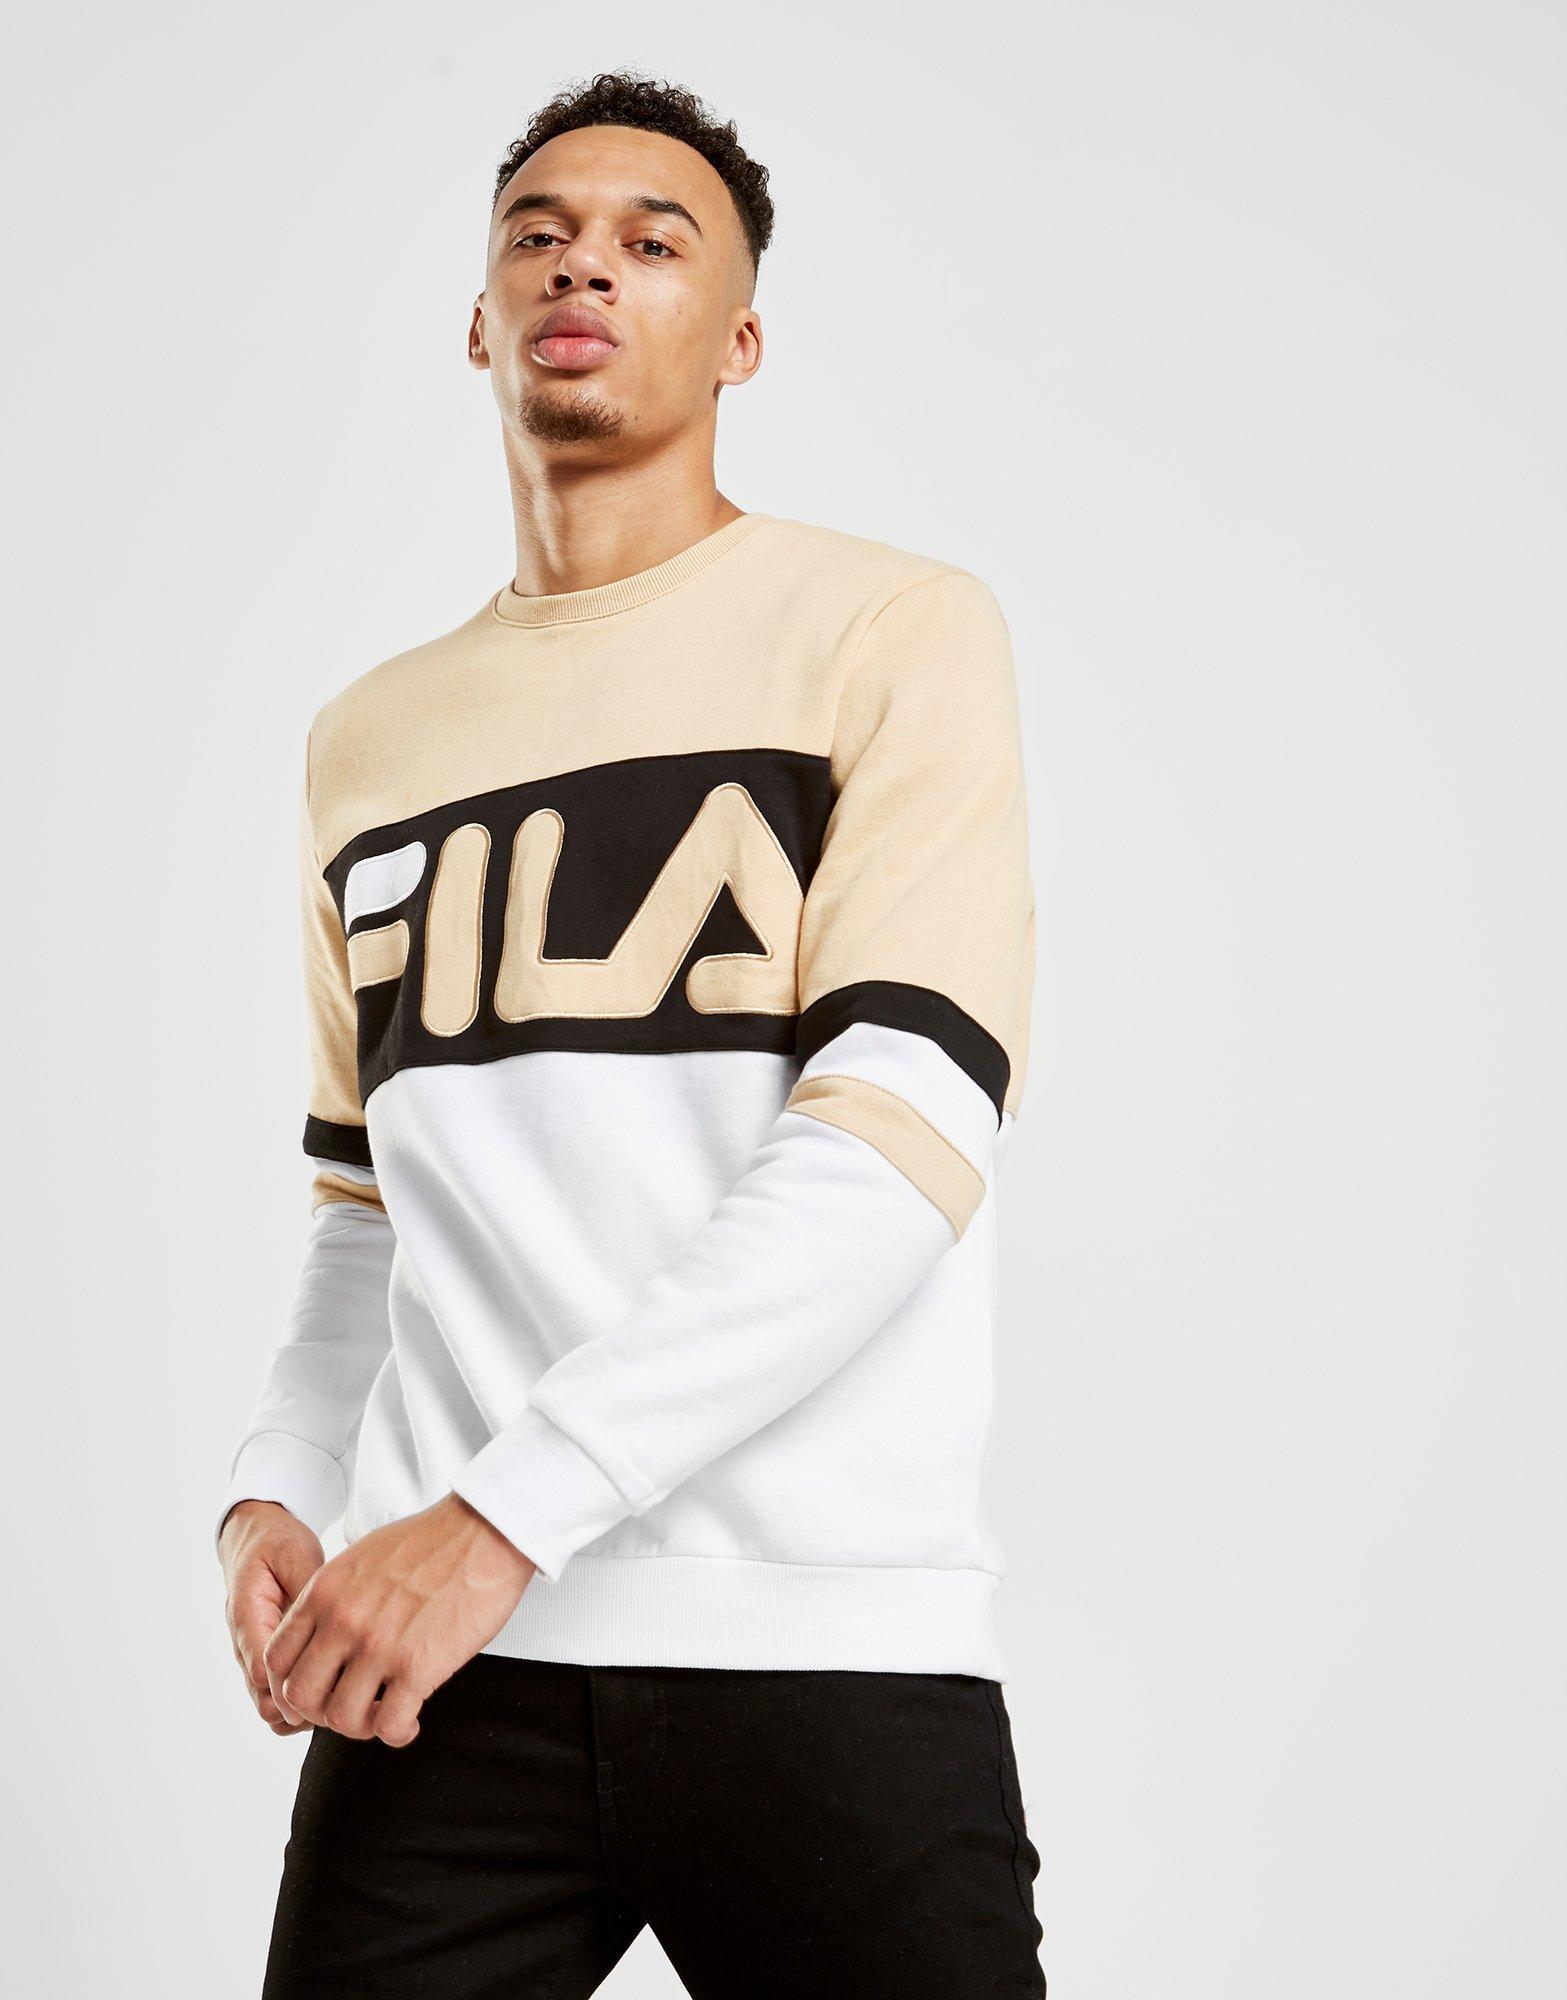 Fila Cotton Freddie Crew Sweatshirt for Men - Lyst